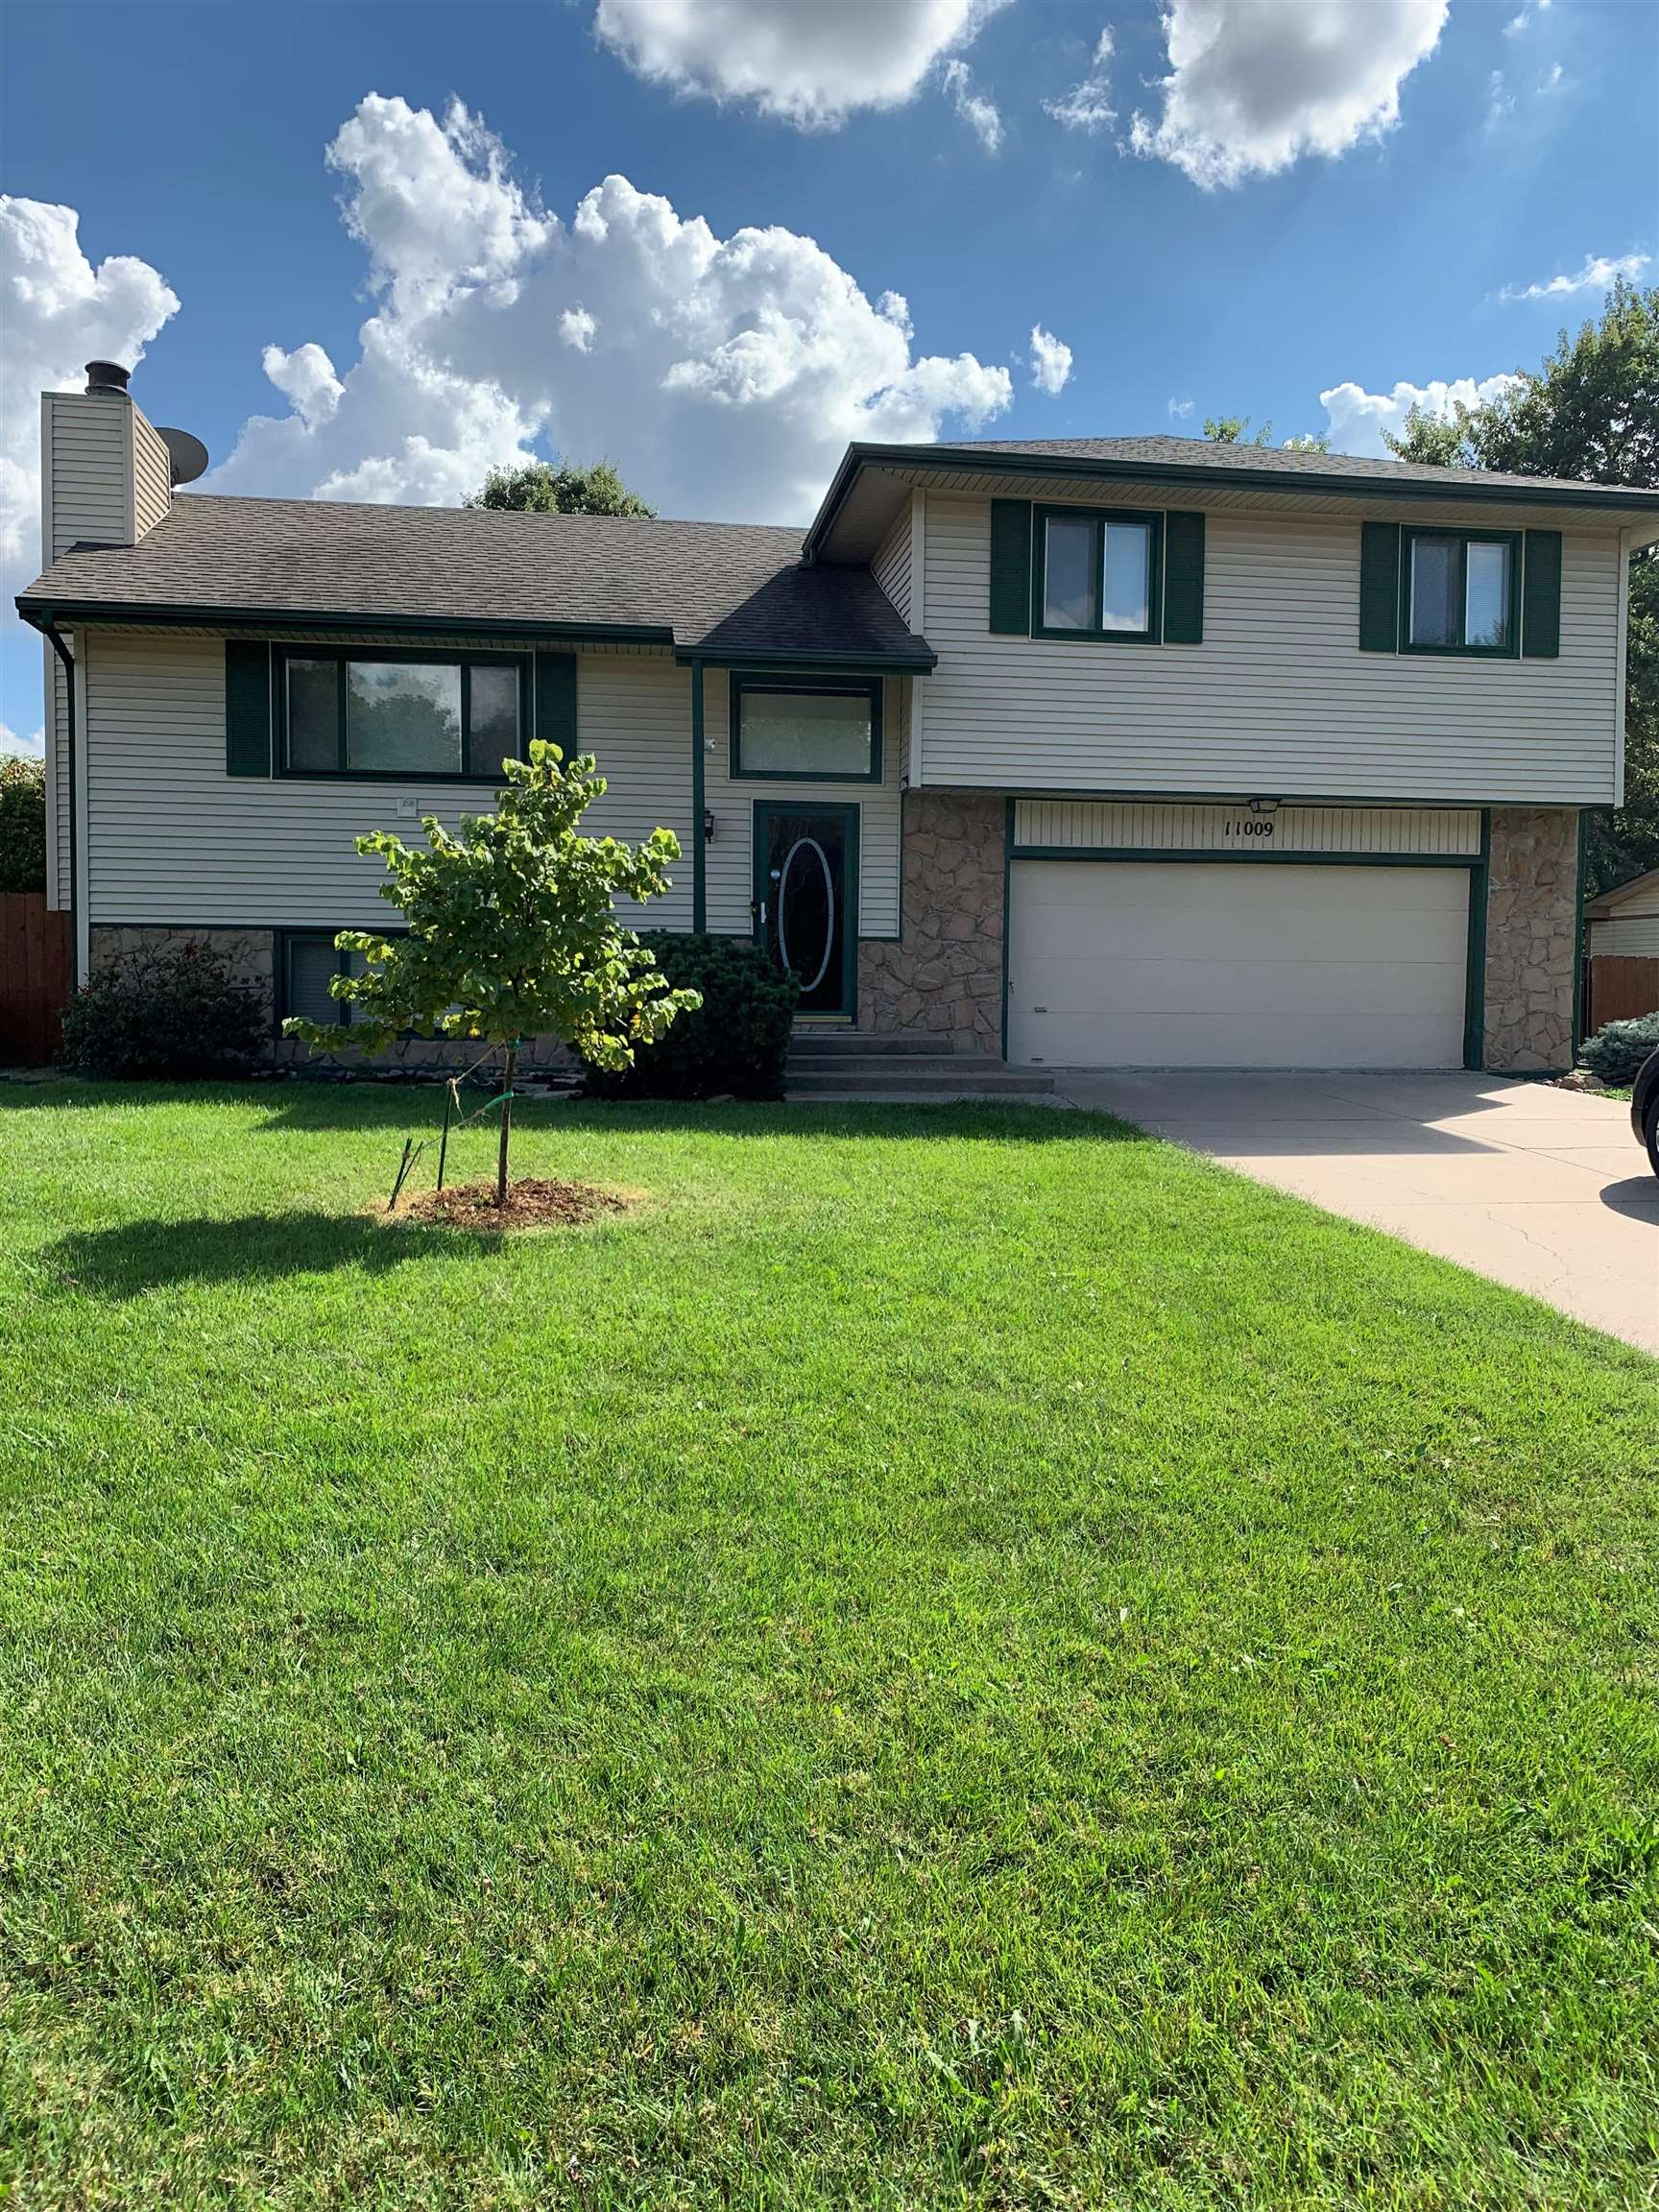 Beautifully well maintained tri-level 3 bedroom, 3 bath home. Upgraded kitchen including beautiful n